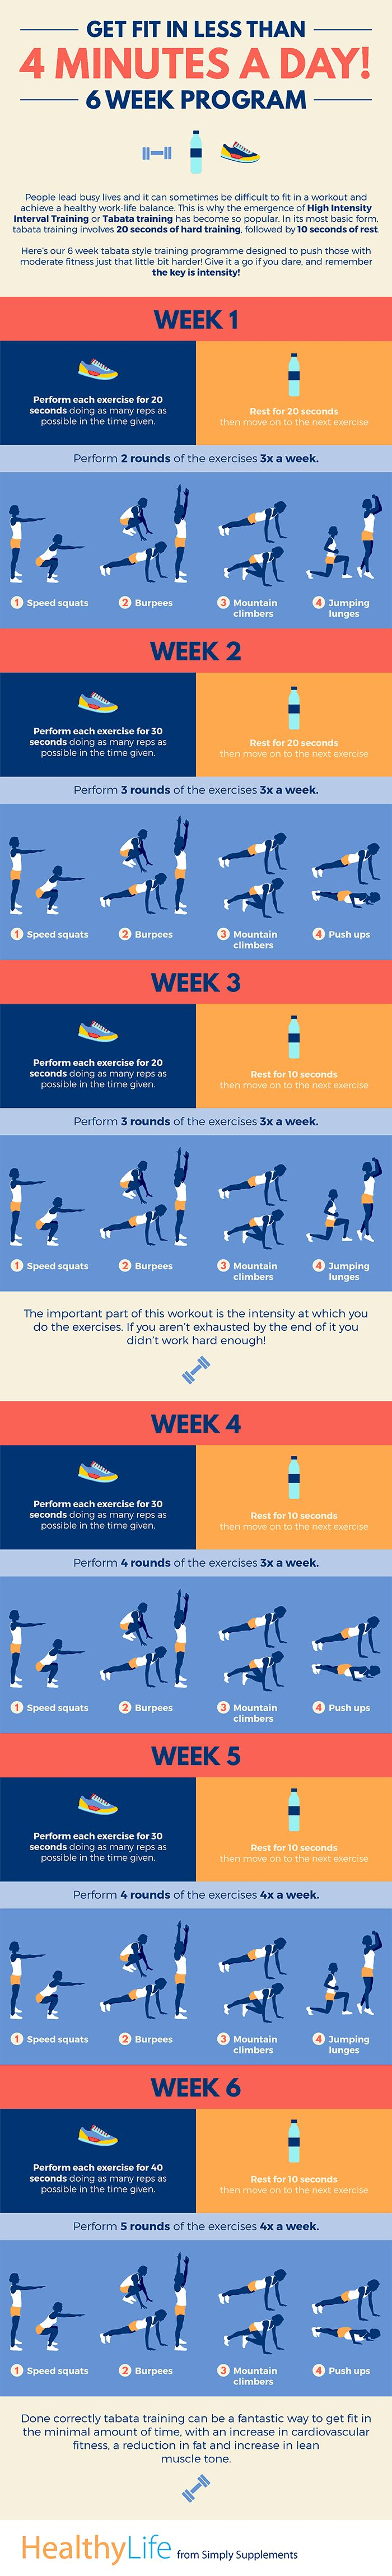 Here's our 6 week HIIT/tabata style training programme designed to push those with moderate fitness just that little bit harder! Give it a go if you dare and remember, the key is intensity!